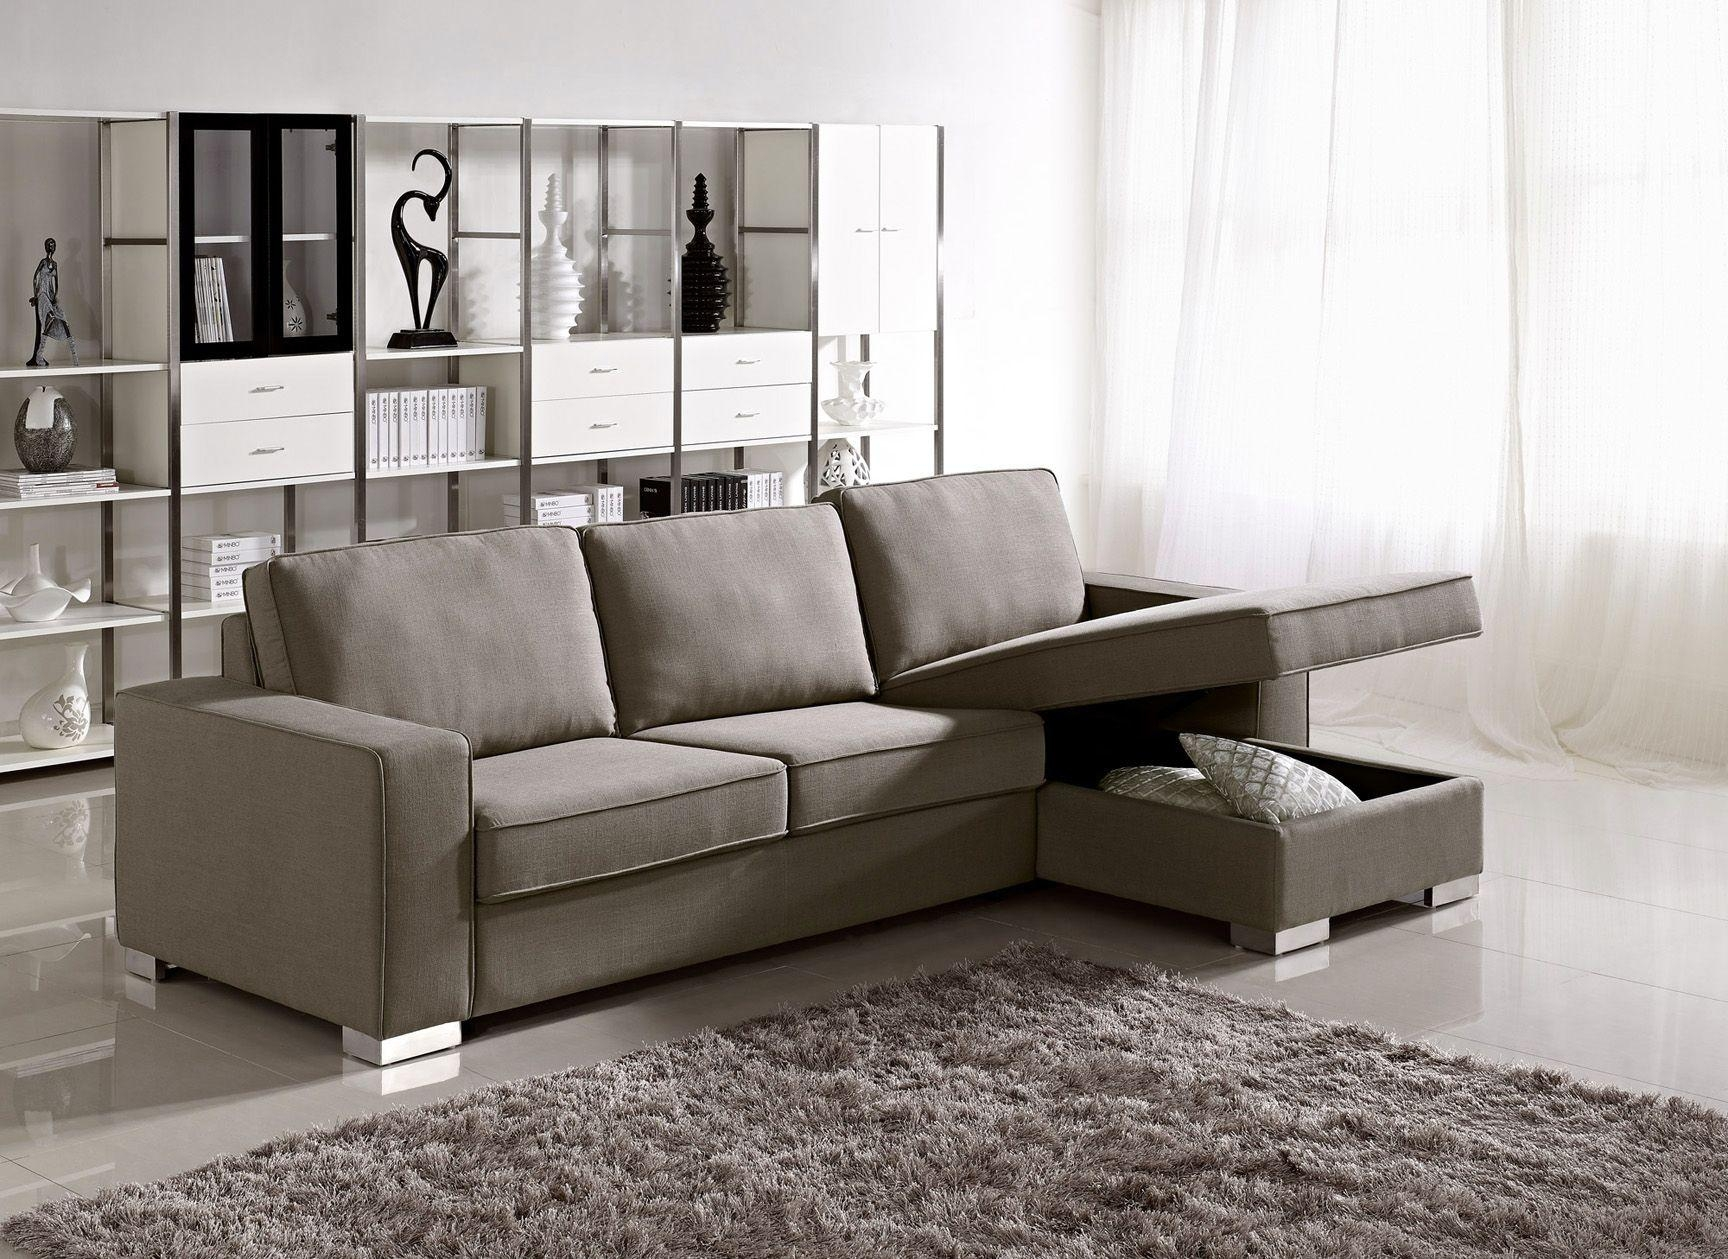 Sectional Sofa Houston And Sectional Sofas 4 Image 4 Of 23 | Auto Regarding Houston Sectional Sofa (View 10 of 20)